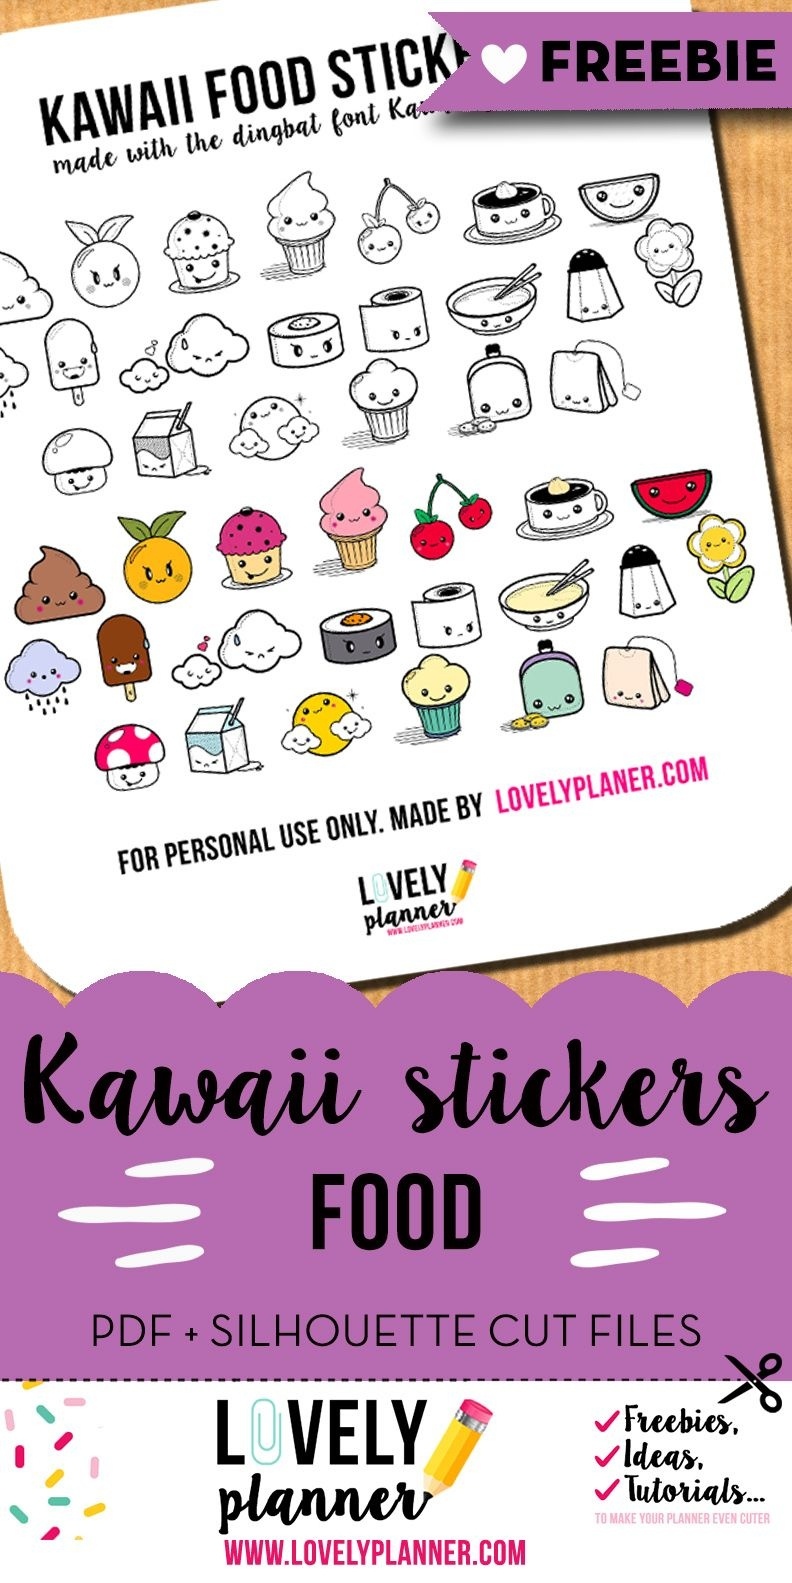 Freebie} Cute Food Stickers For Your Planner   Filofax   Food - Free Printable Kawaii Stickers